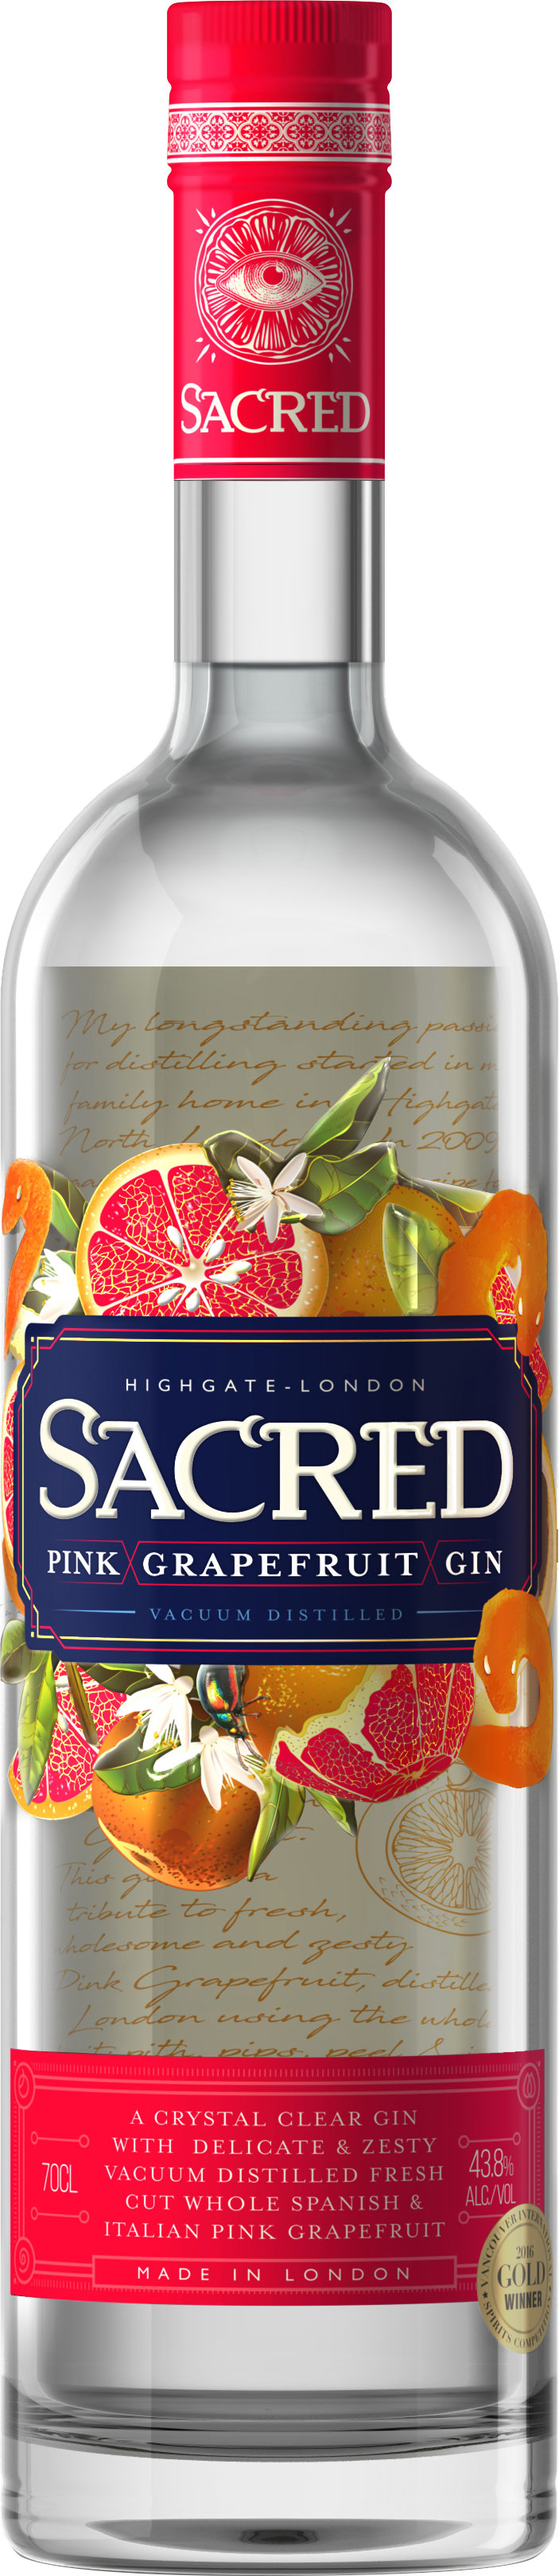 Sacred - Pink Grapefruit Gin 70cl Bottle